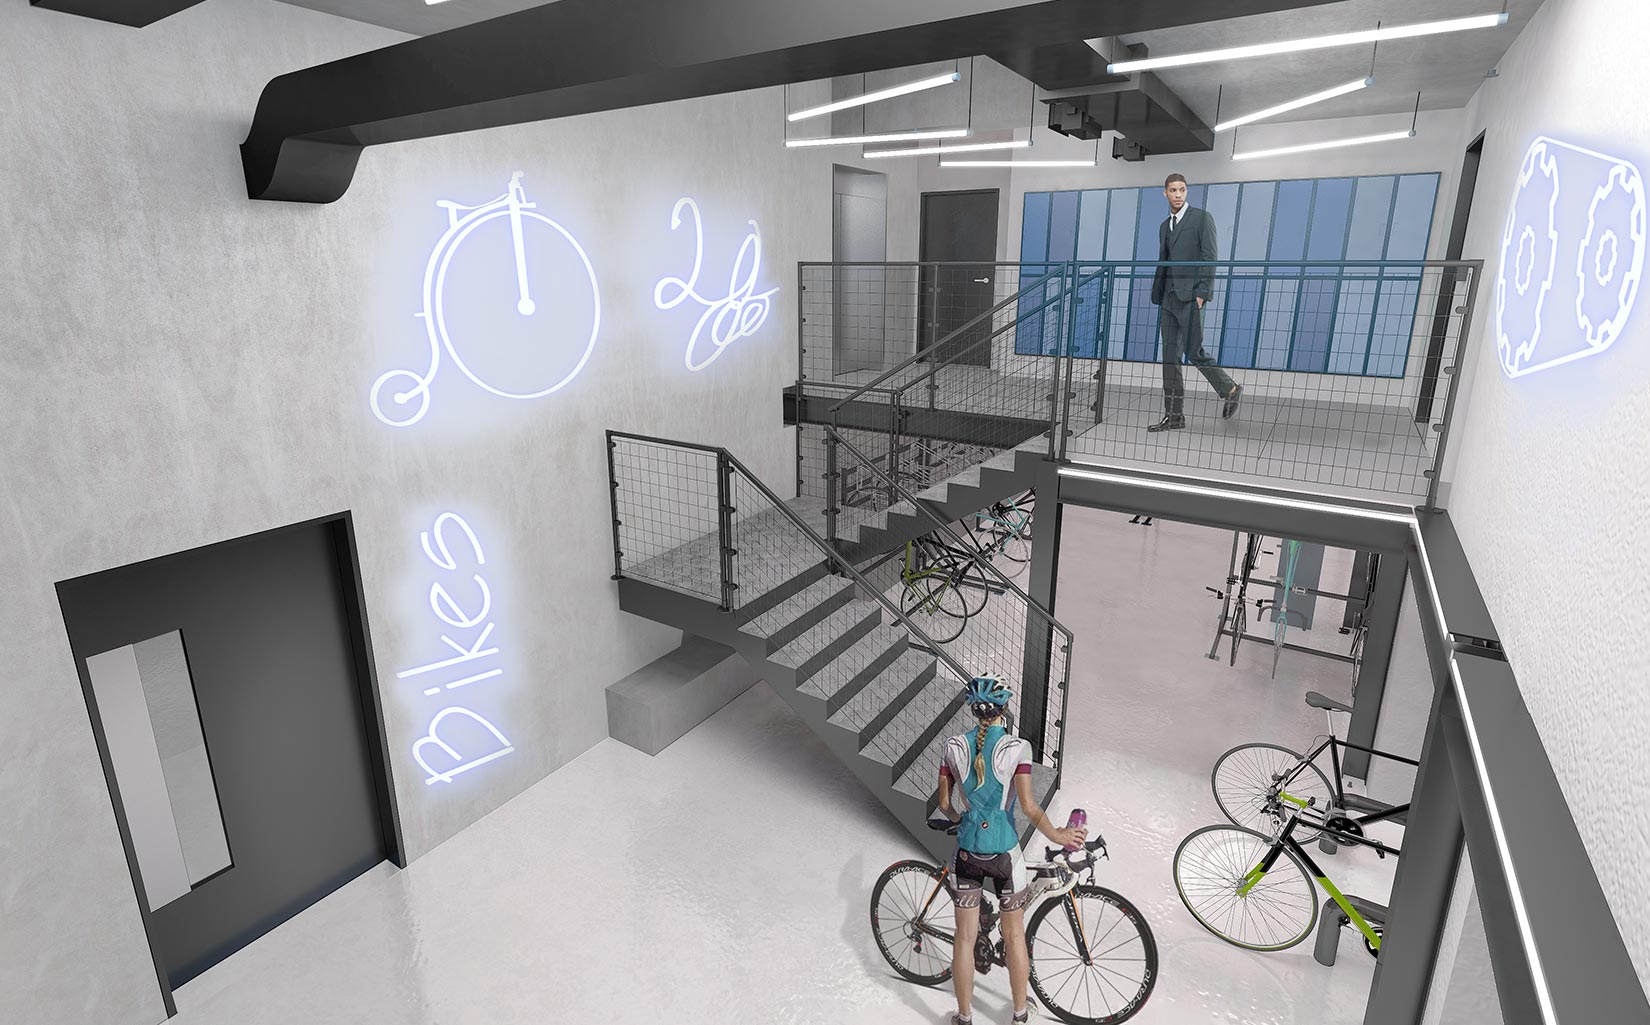 20 Saint Andrews House, Holburn, London, 3D Visual of Bike Store